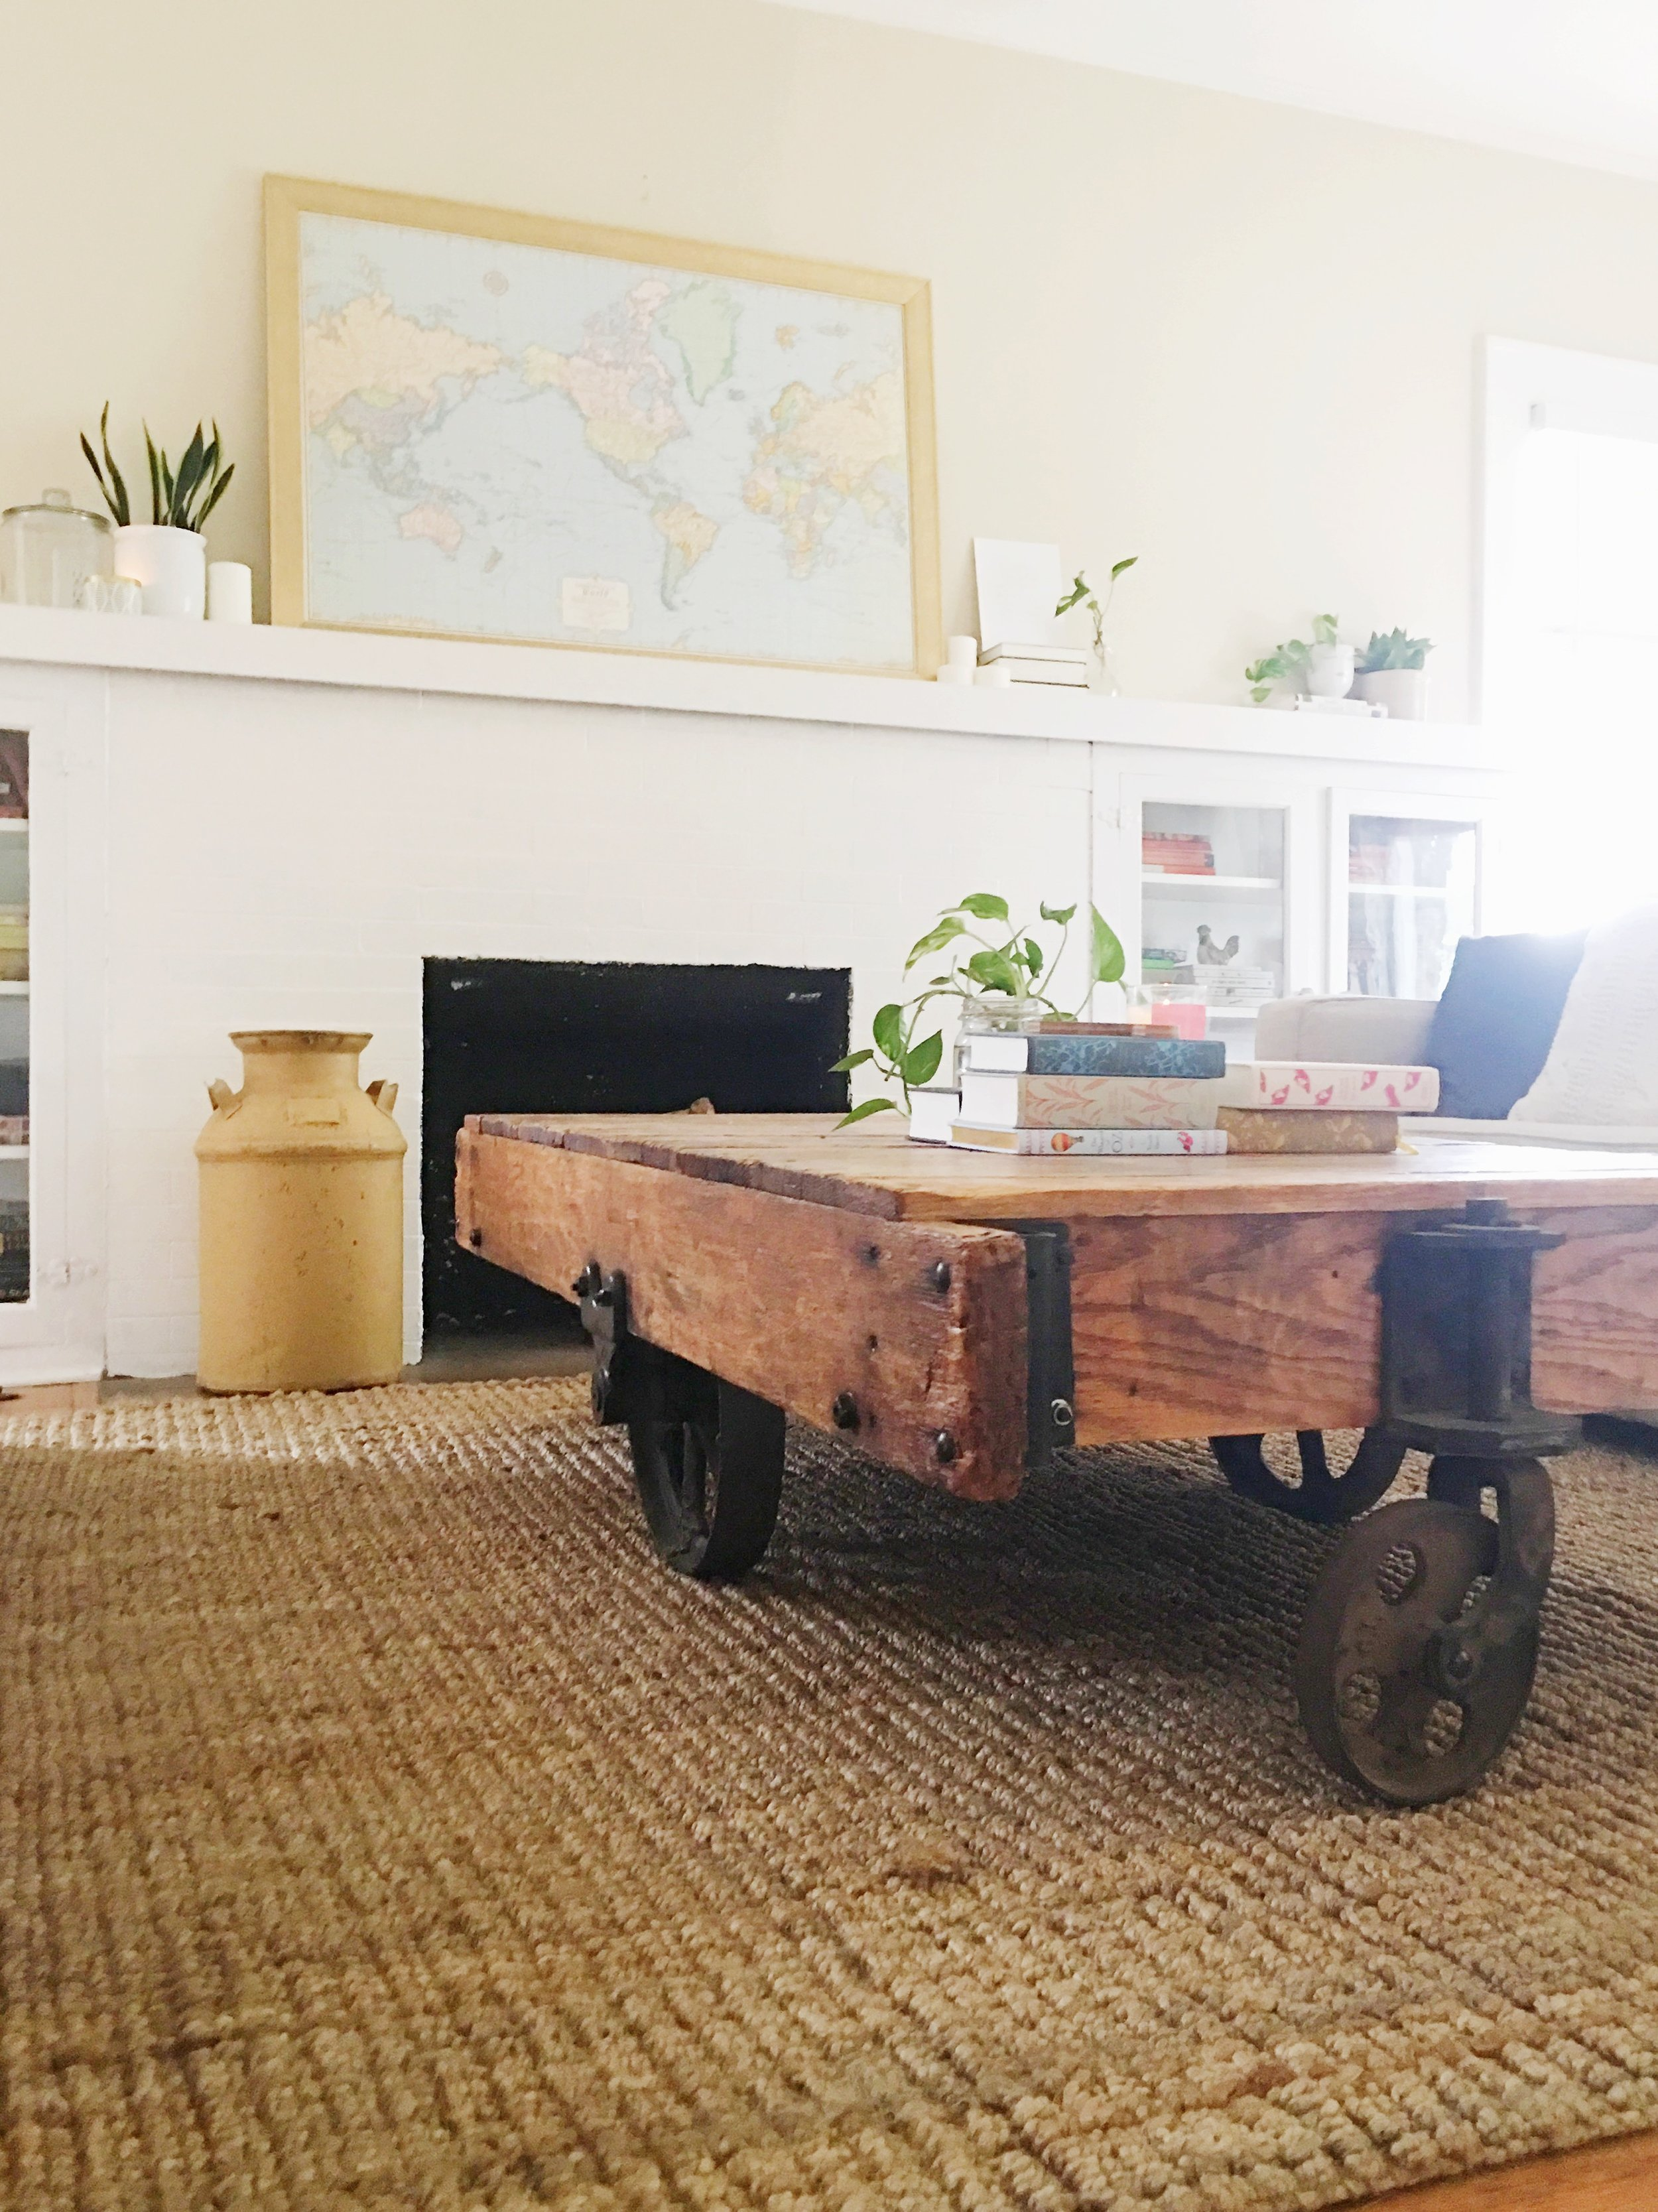 jute rug + vintage trolley cart